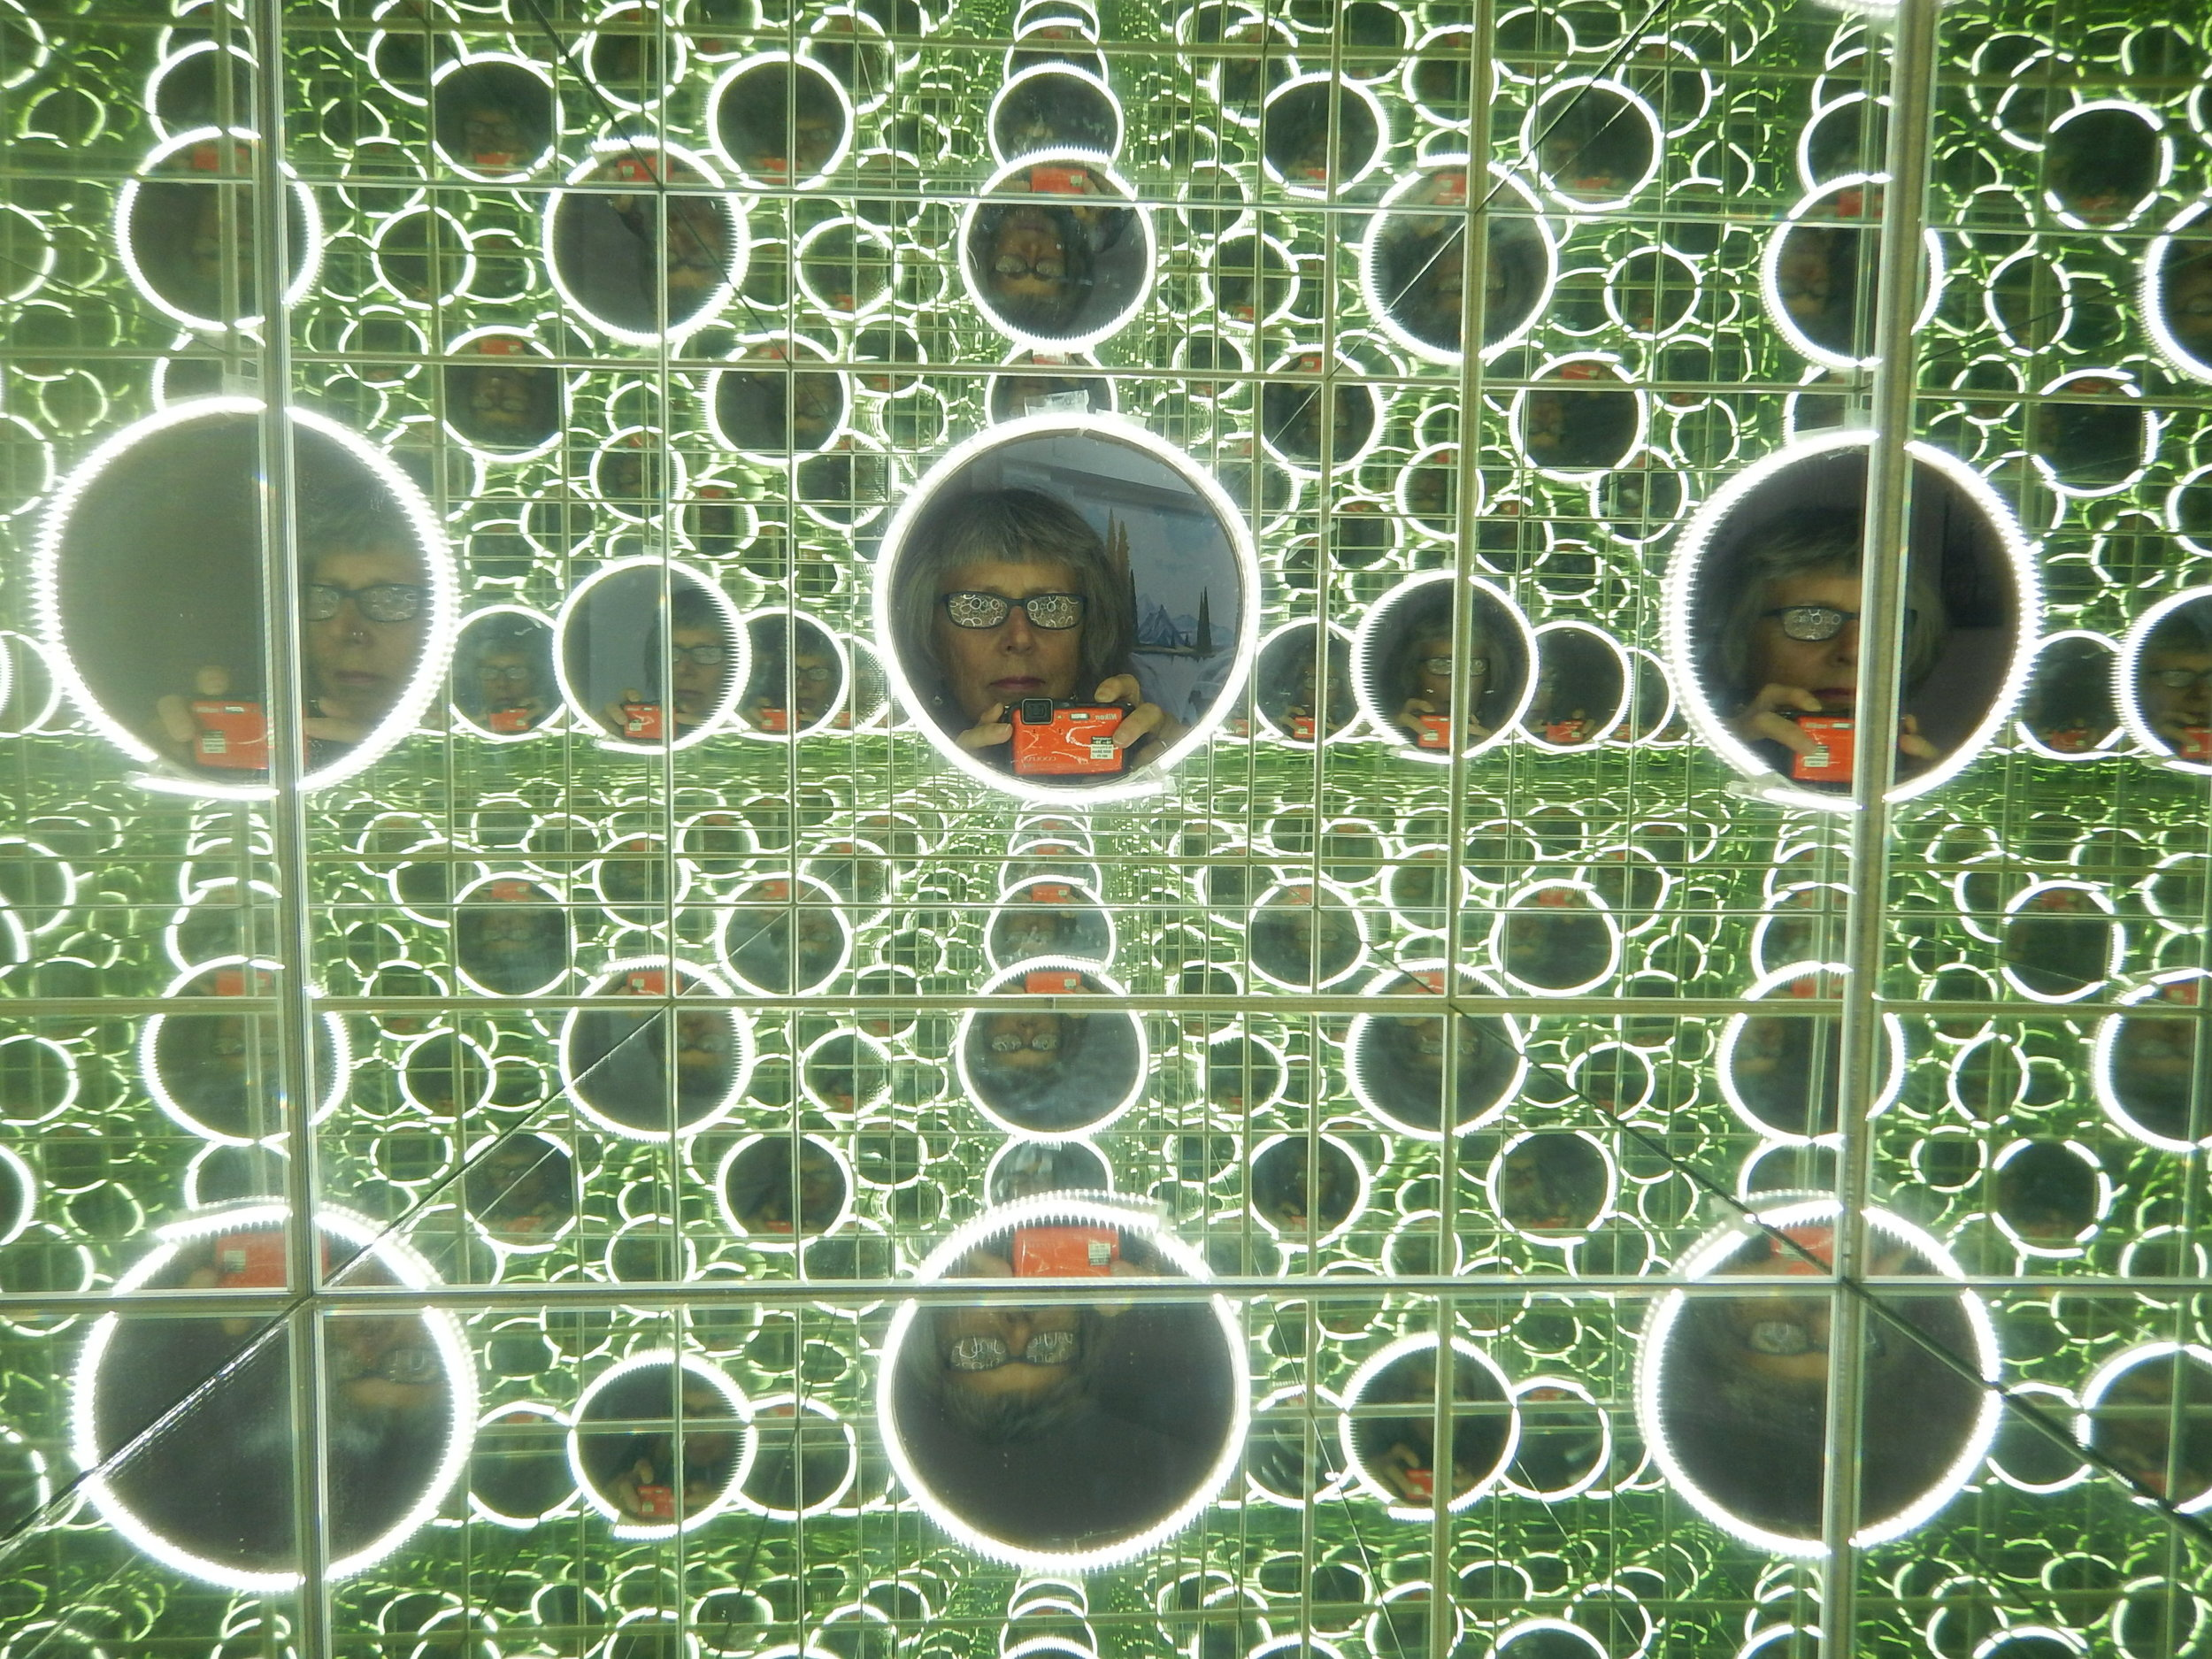 Looking into the mirror cube.